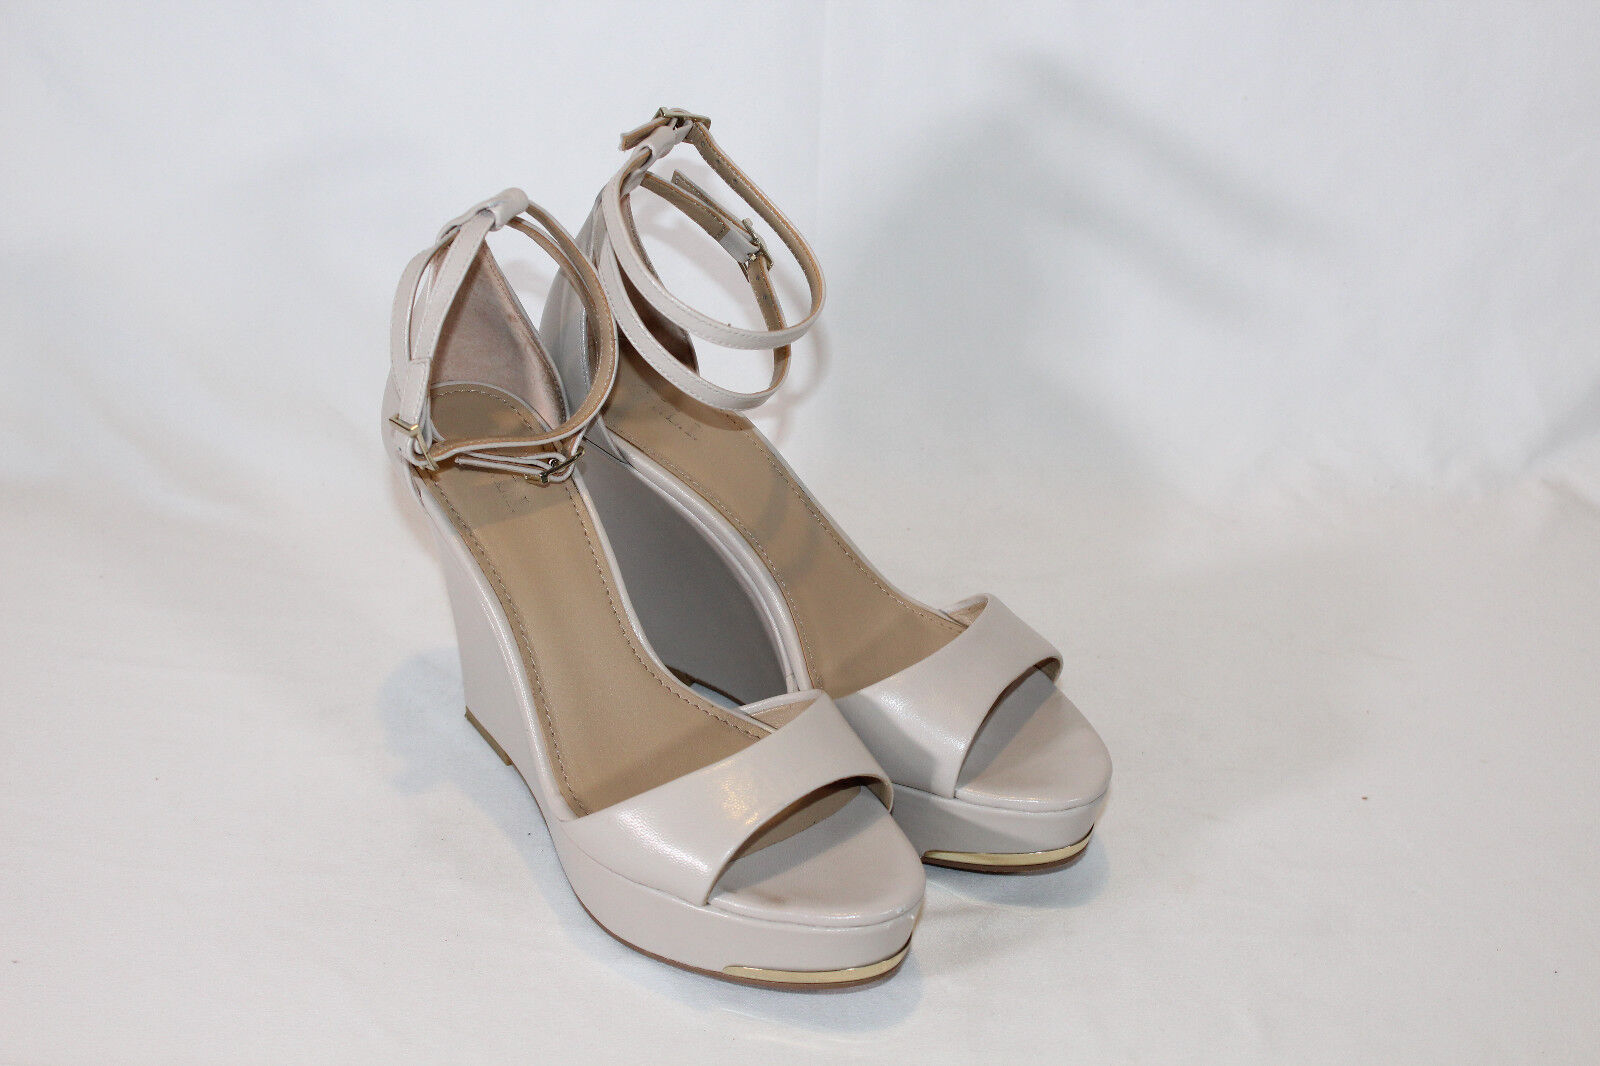 G.I.L.I. Leather Ankle Strap Wedges - Avery 8 medium dune color